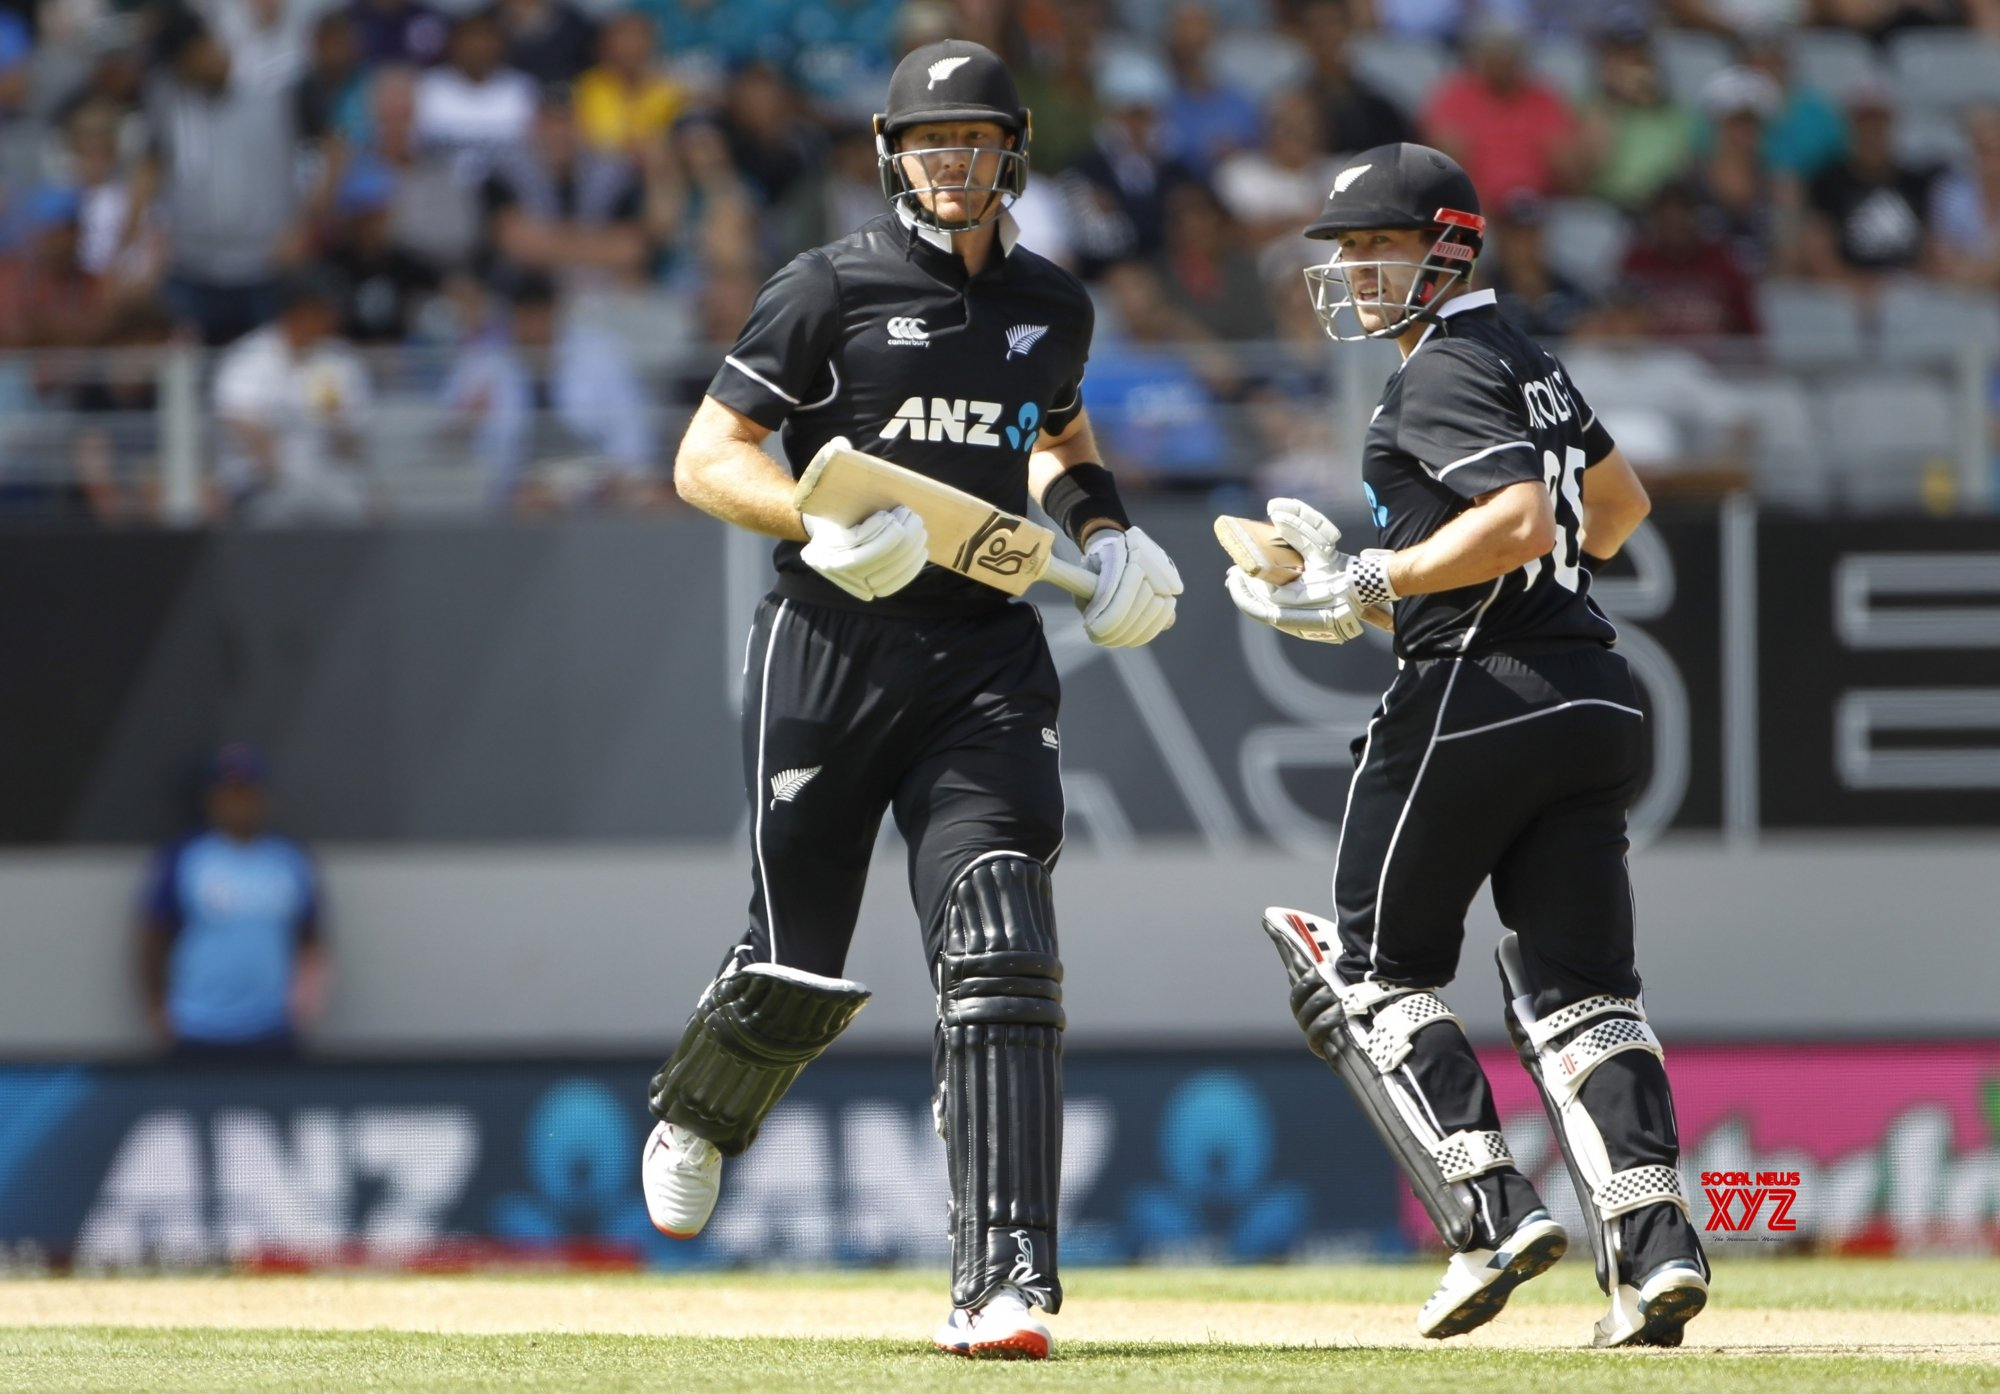 Auckland: 2nd ODI - India Vs New Zealand (Batch - 4) #Gallery